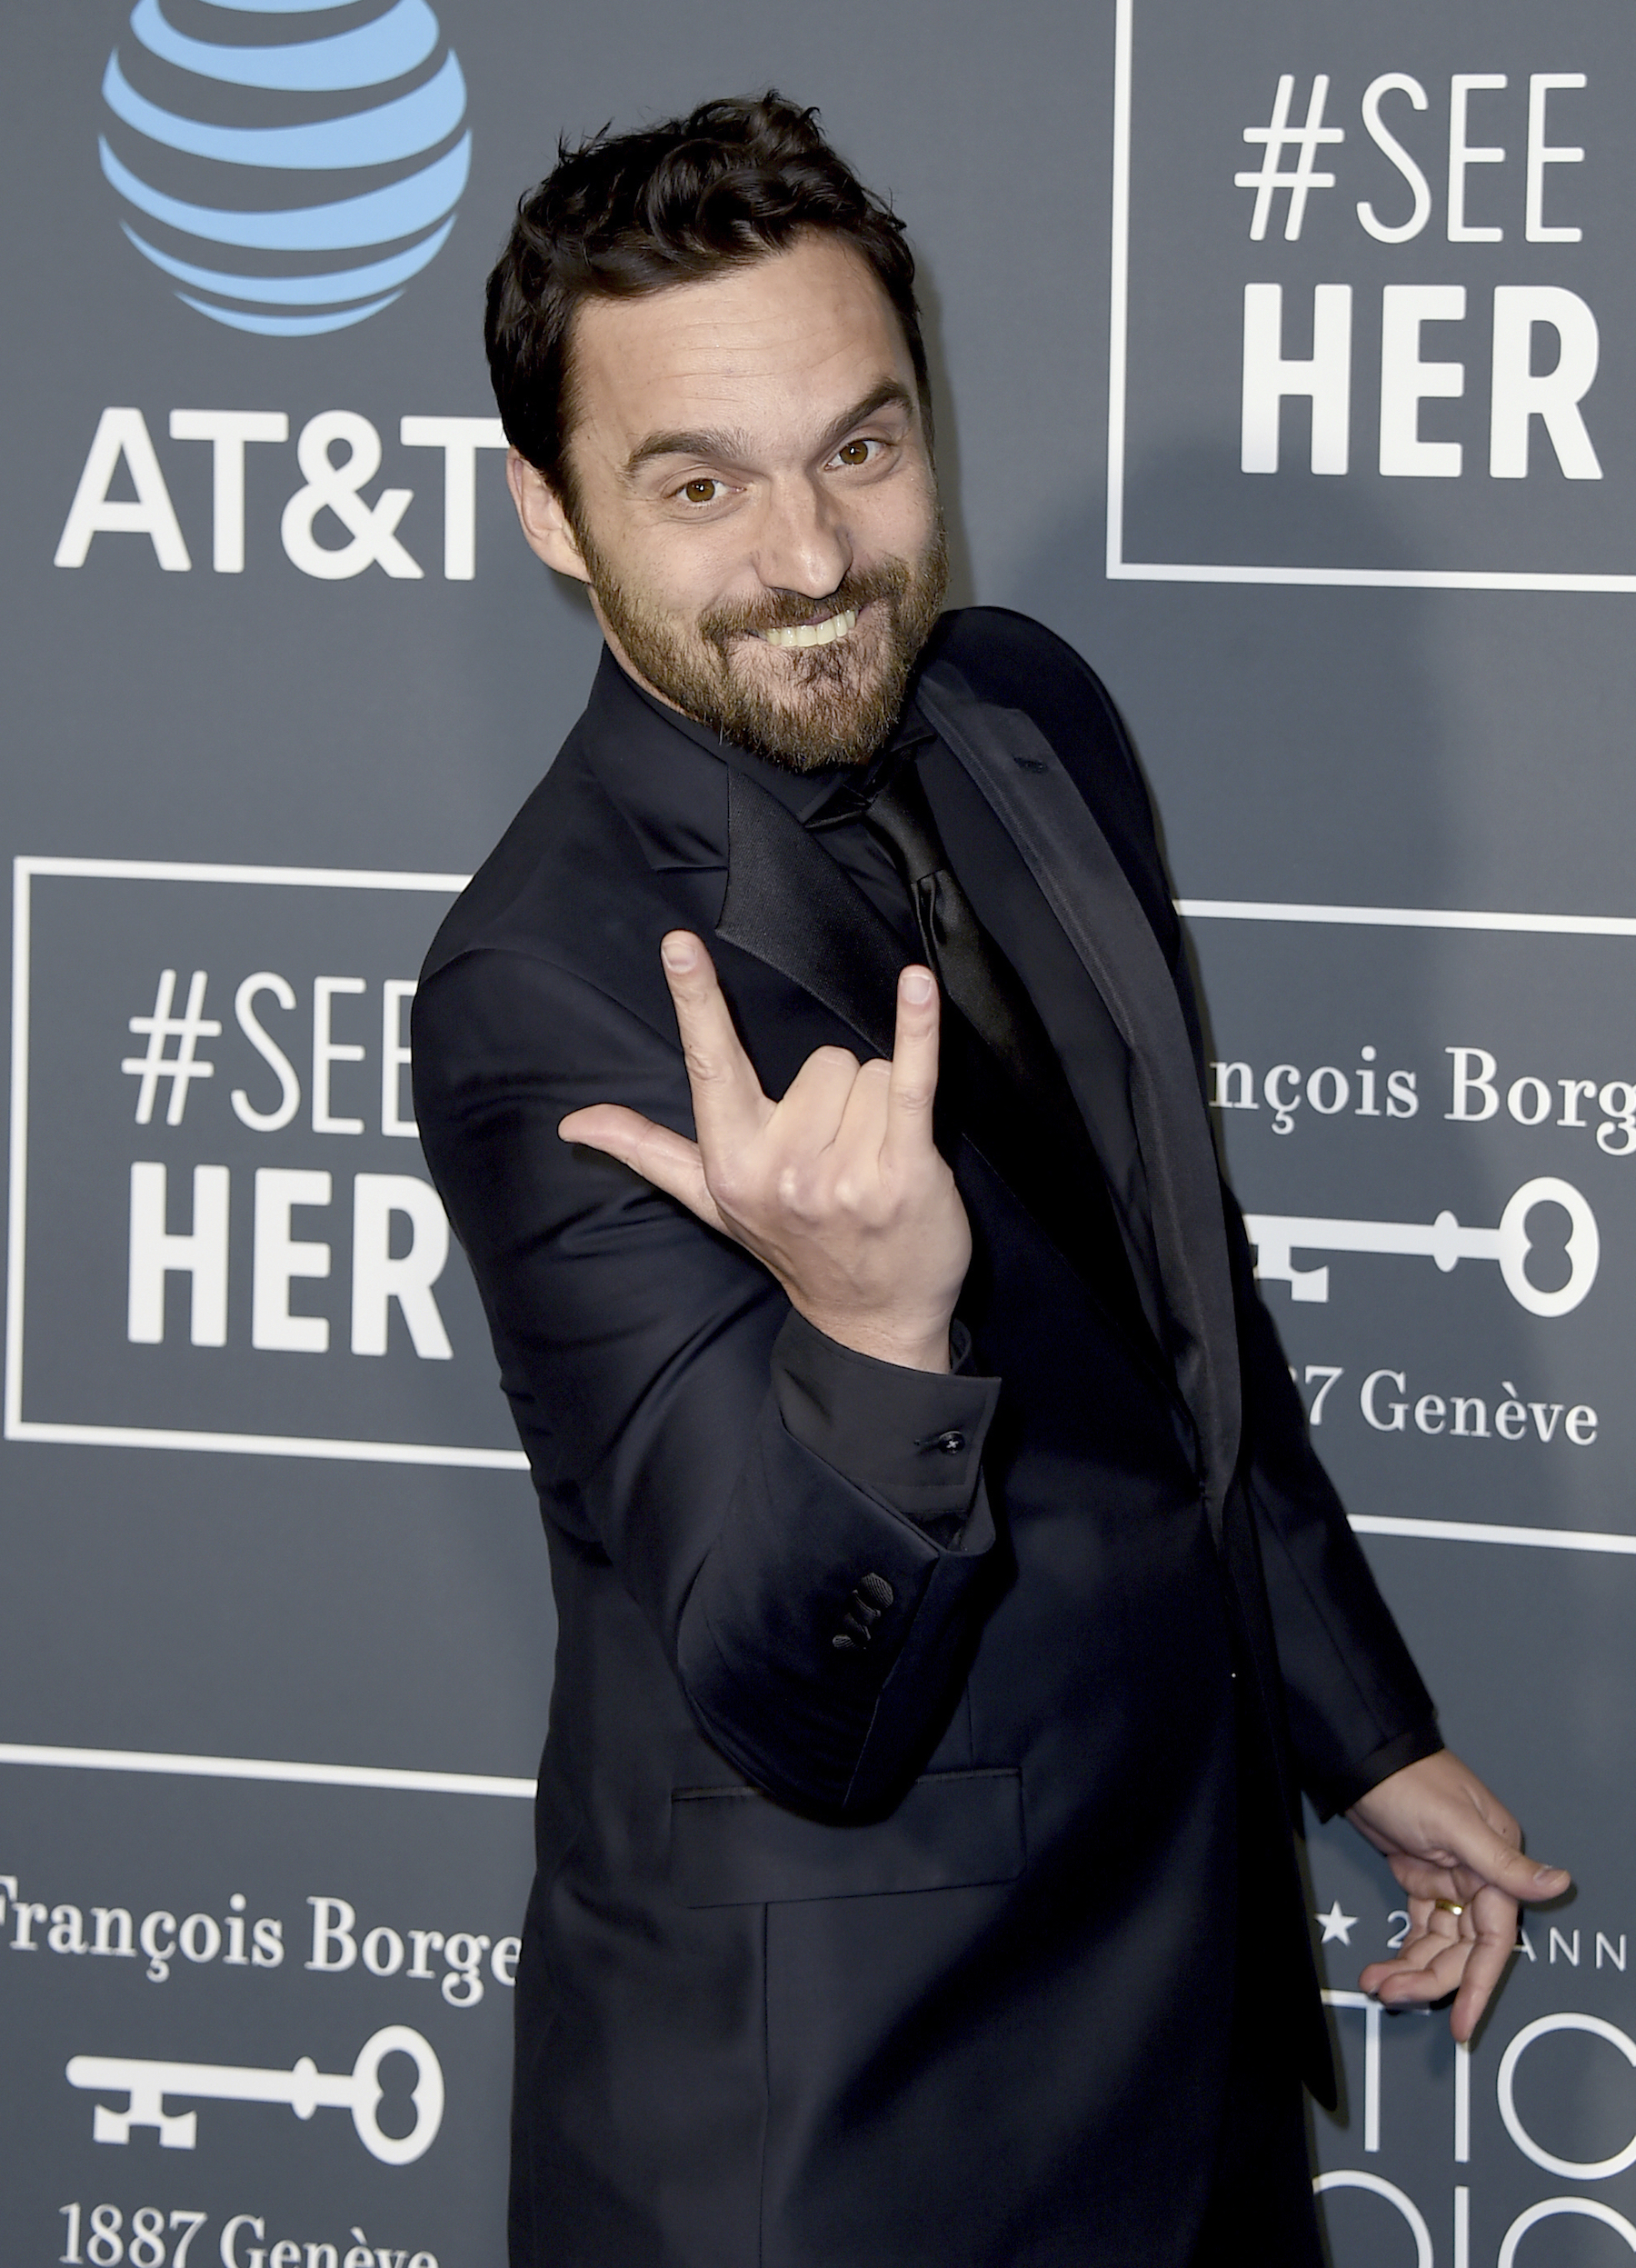 "<div class=""meta image-caption""><div class=""origin-logo origin-image ap""><span>AP</span></div><span class=""caption-text"">Jake Johnson arrives at the 24th annual Critics' Choice Awards on Sunday, Jan. 13, 2019, at the Barker Hangar in Santa Monica, Calif. (Jordan Strauss/Invision/AP)</span></div>"